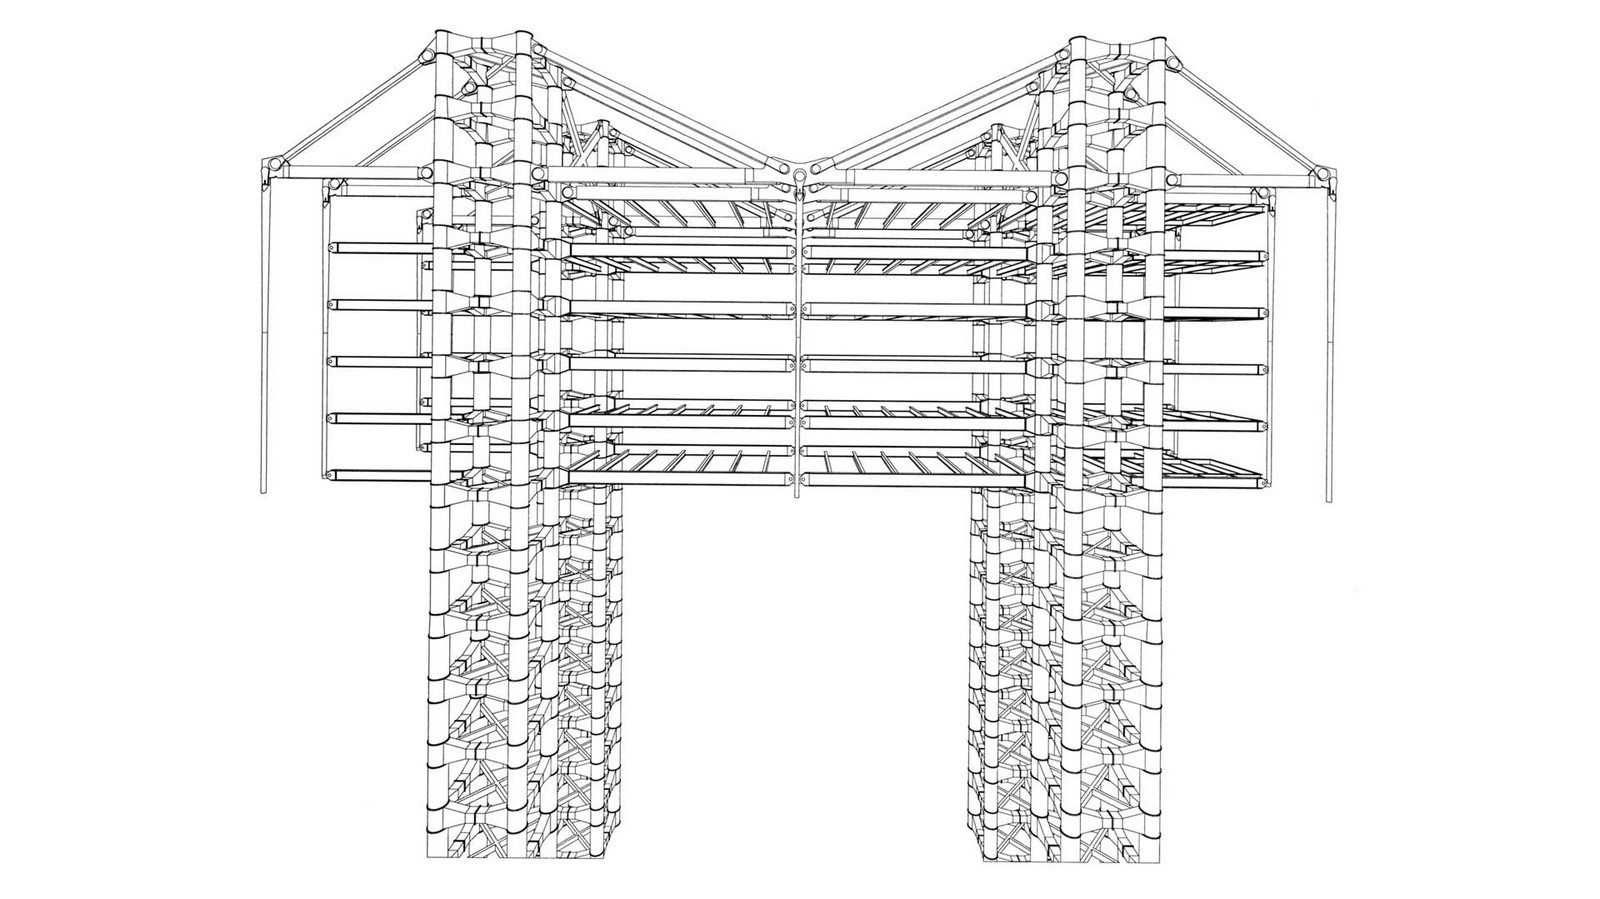 HSBC Building by Norman Foster: Missing internal support structure - Sheet7